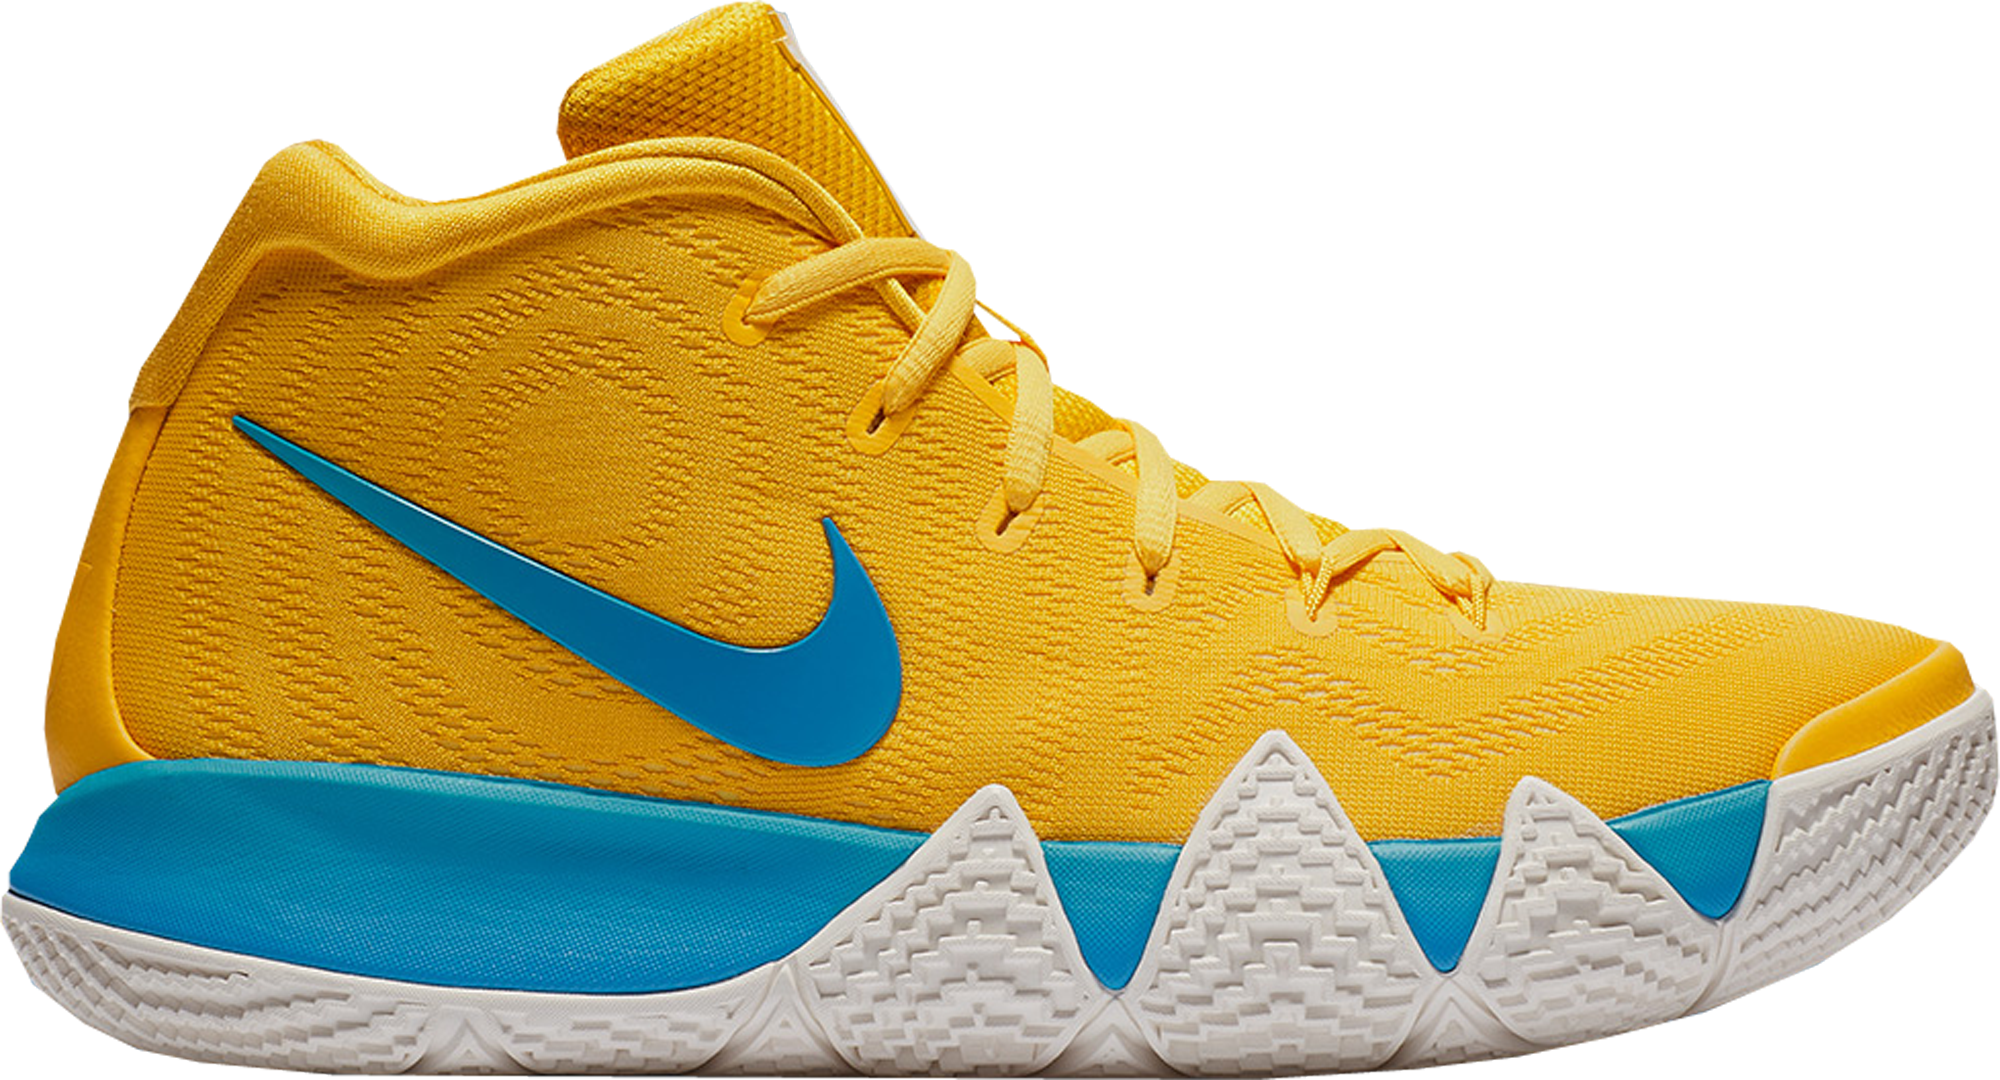 on sale f5594 c5e29 Nike Kyrie 4 Kix - StockX News